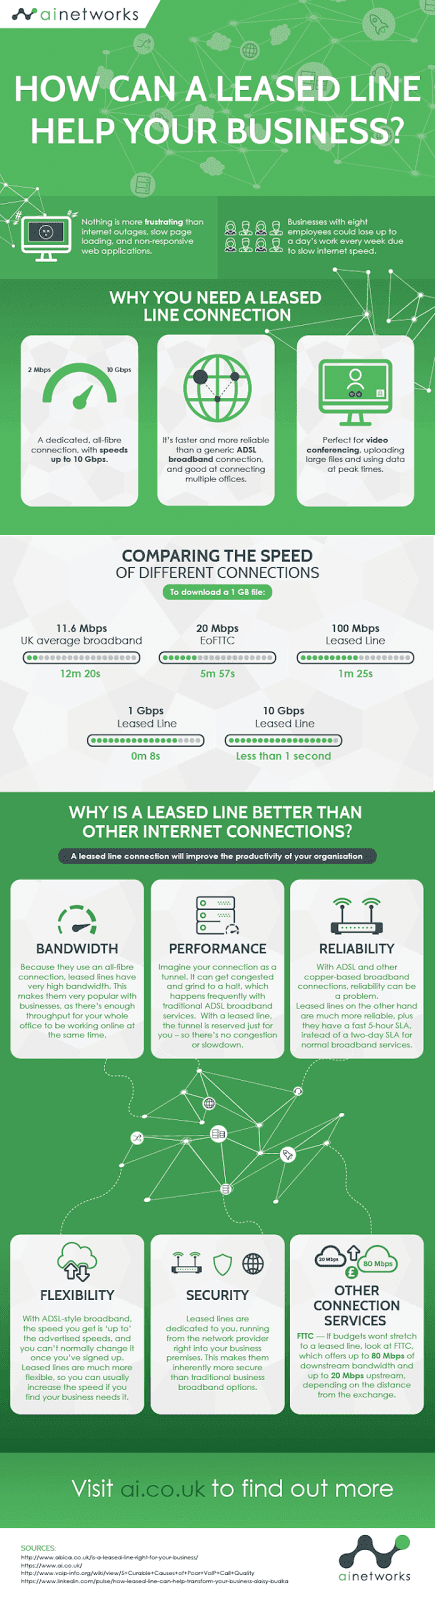 Leased Line Business Connection